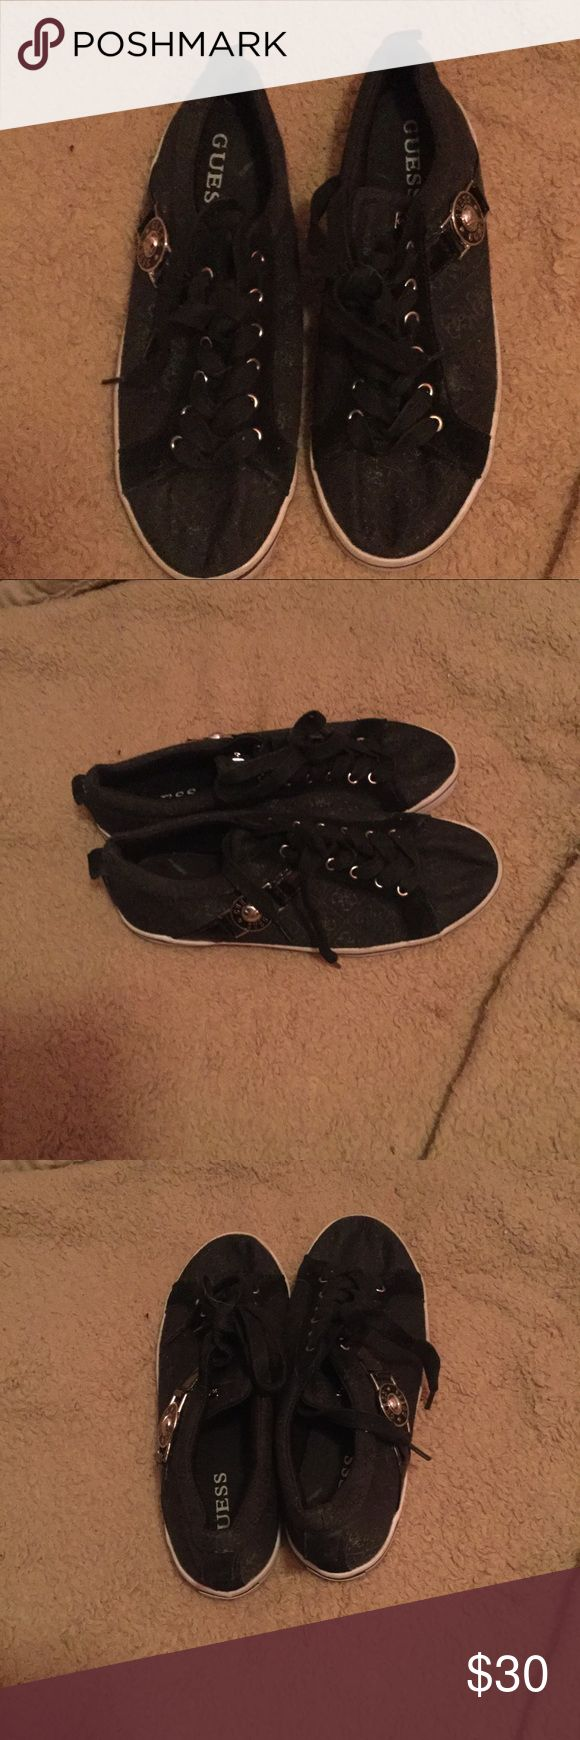 Guess Sneakers In great condition Guess Shoes Sneakers